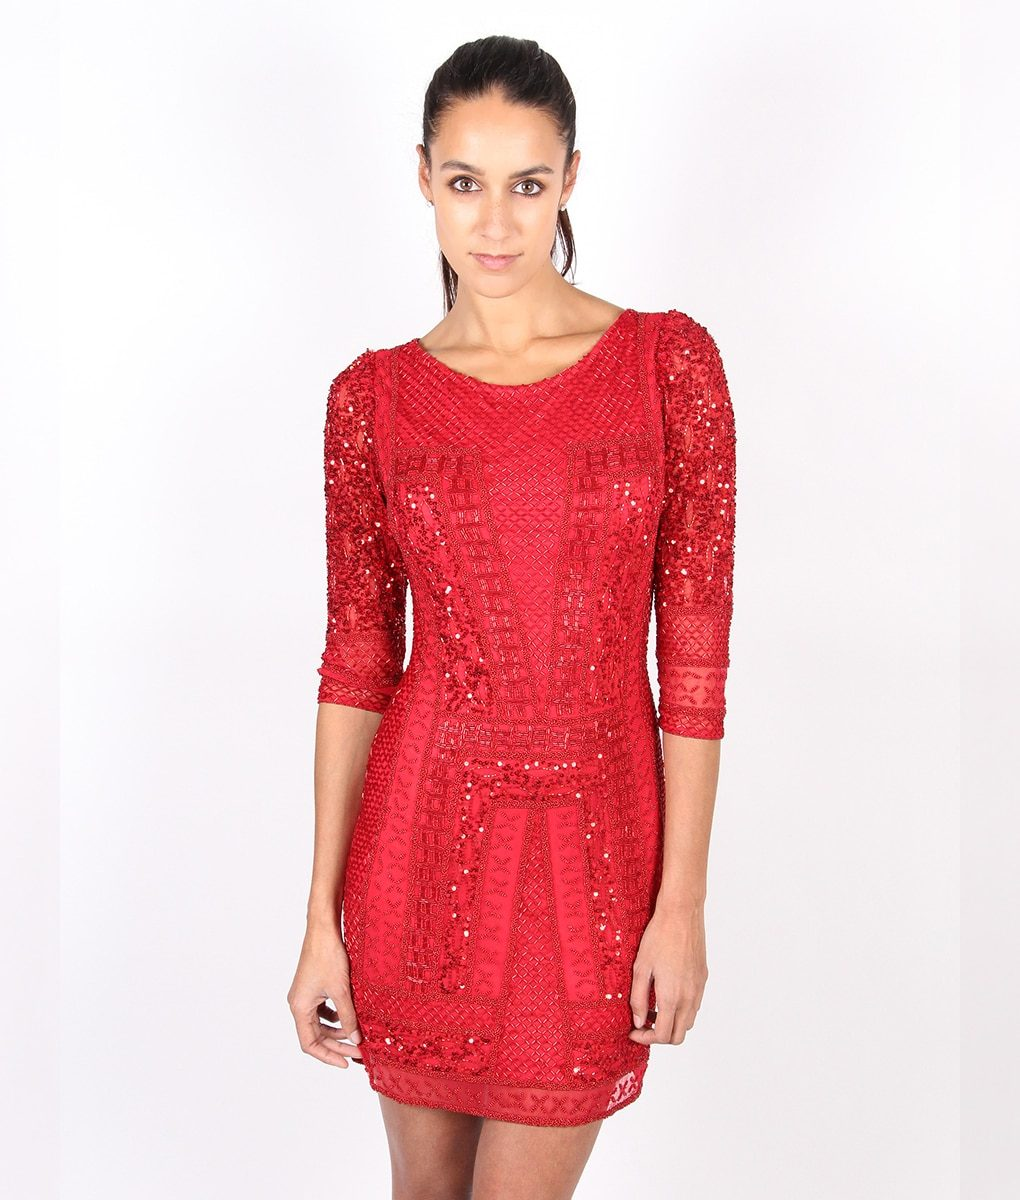 Alila-Red-Long-sleeve-Sequin-party-dress-by-Scala